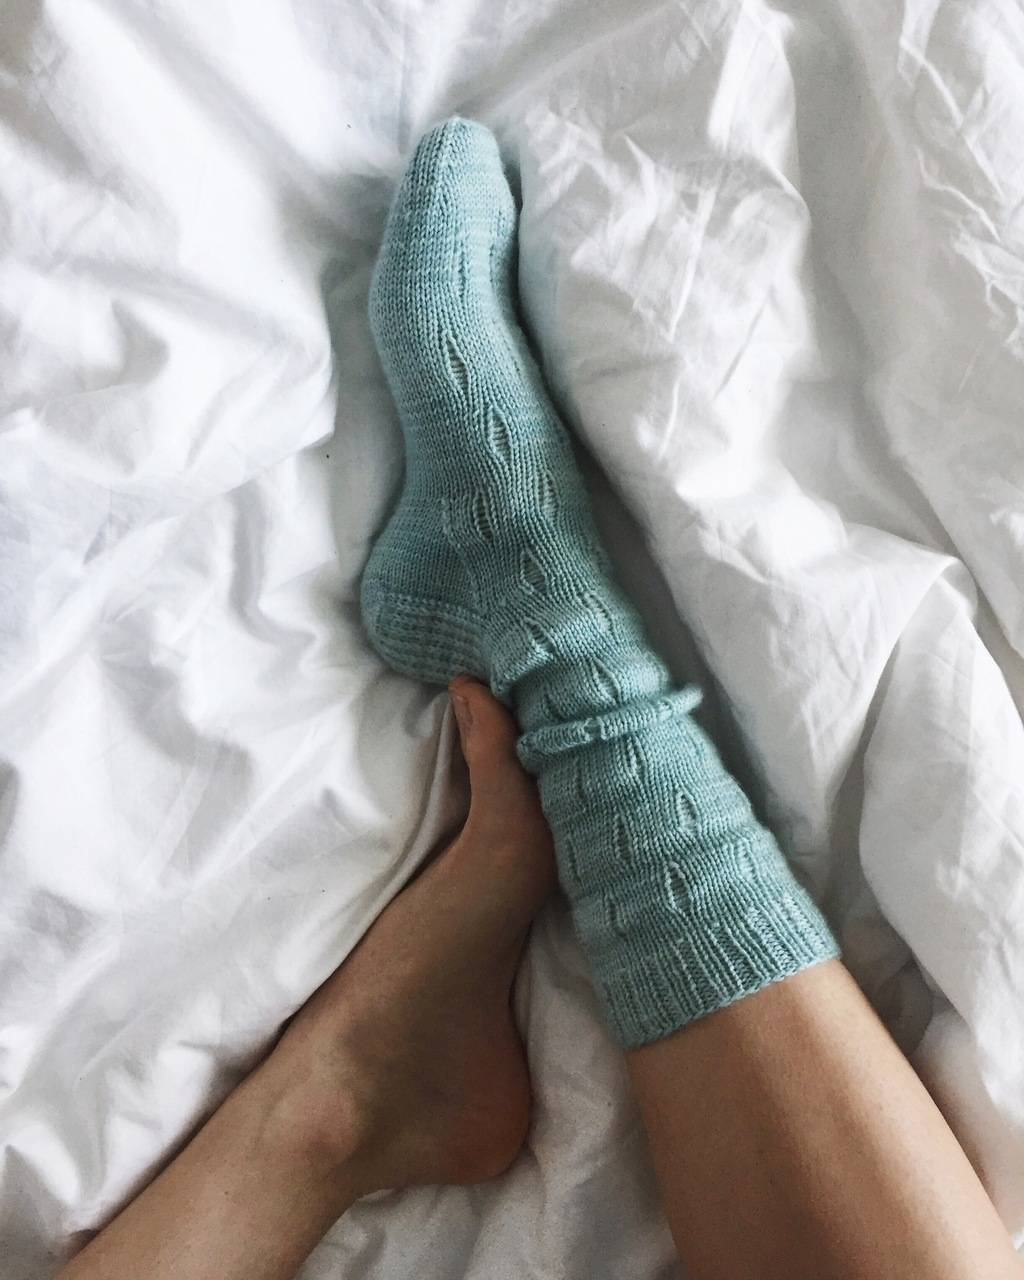 Описание Goodmorning socks